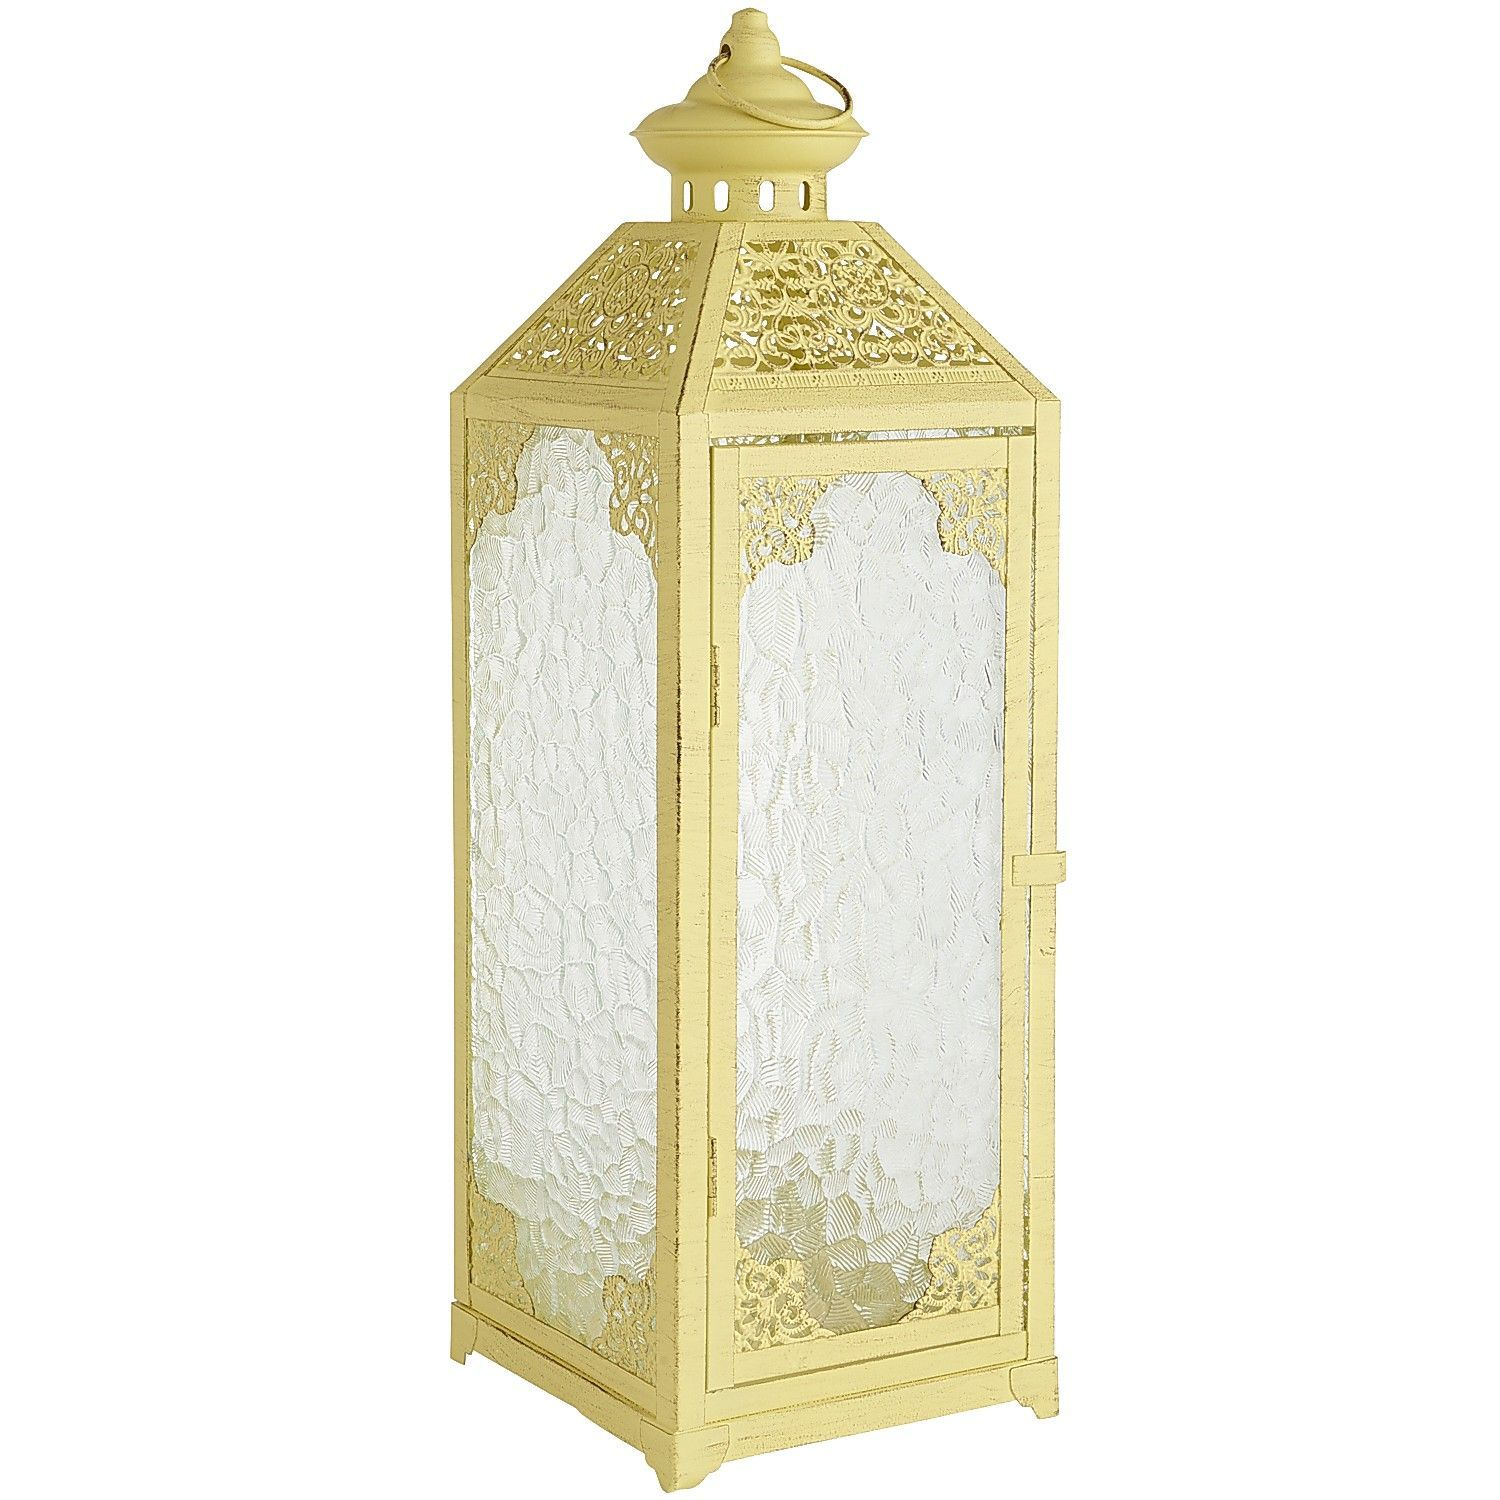 Pebble glass lantern yellow when it comes to ambient lighting